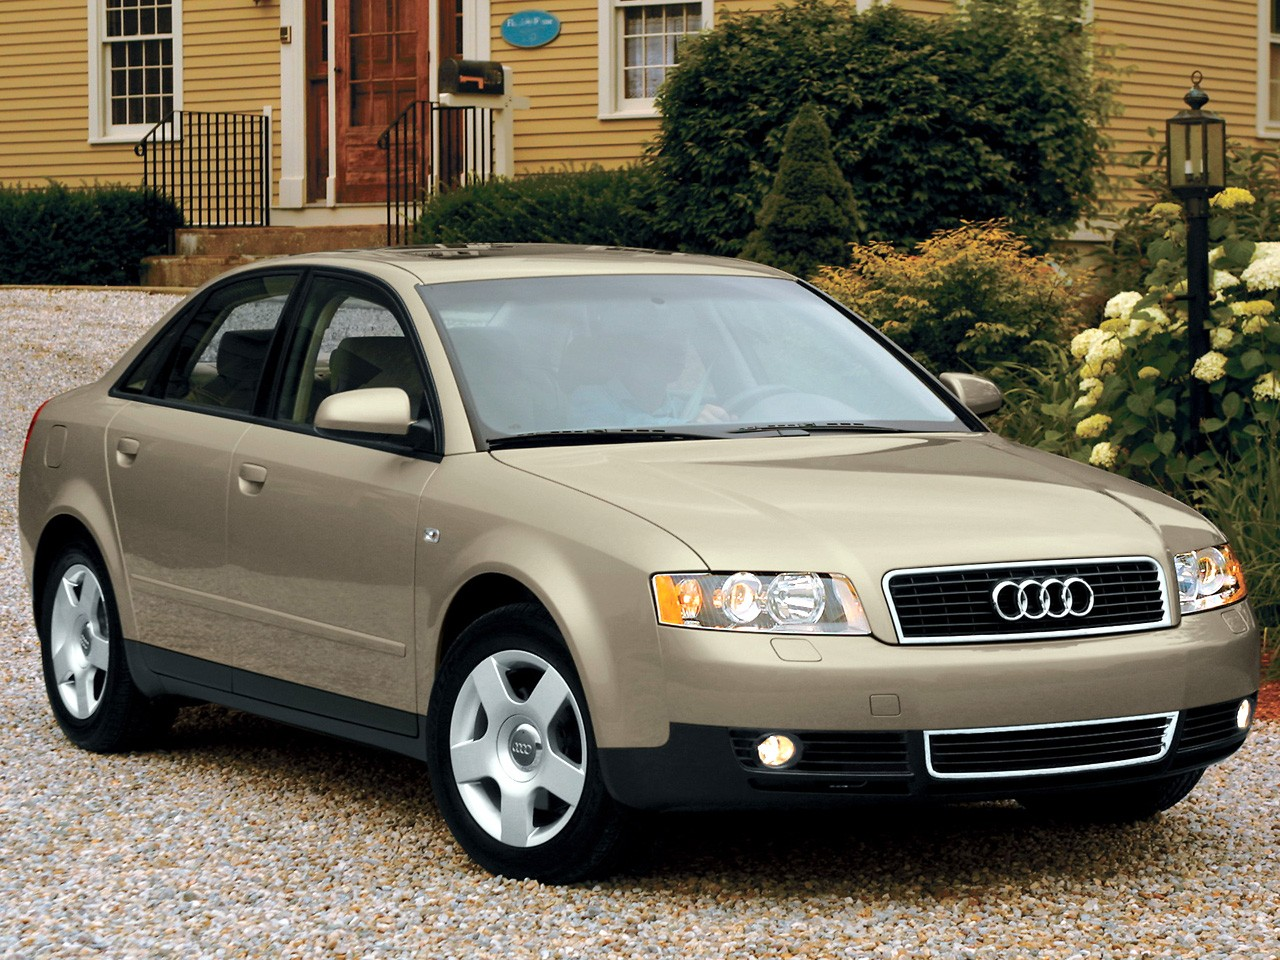 audi a4 specs 2001 2002 2003 2004 autoevolution. Black Bedroom Furniture Sets. Home Design Ideas